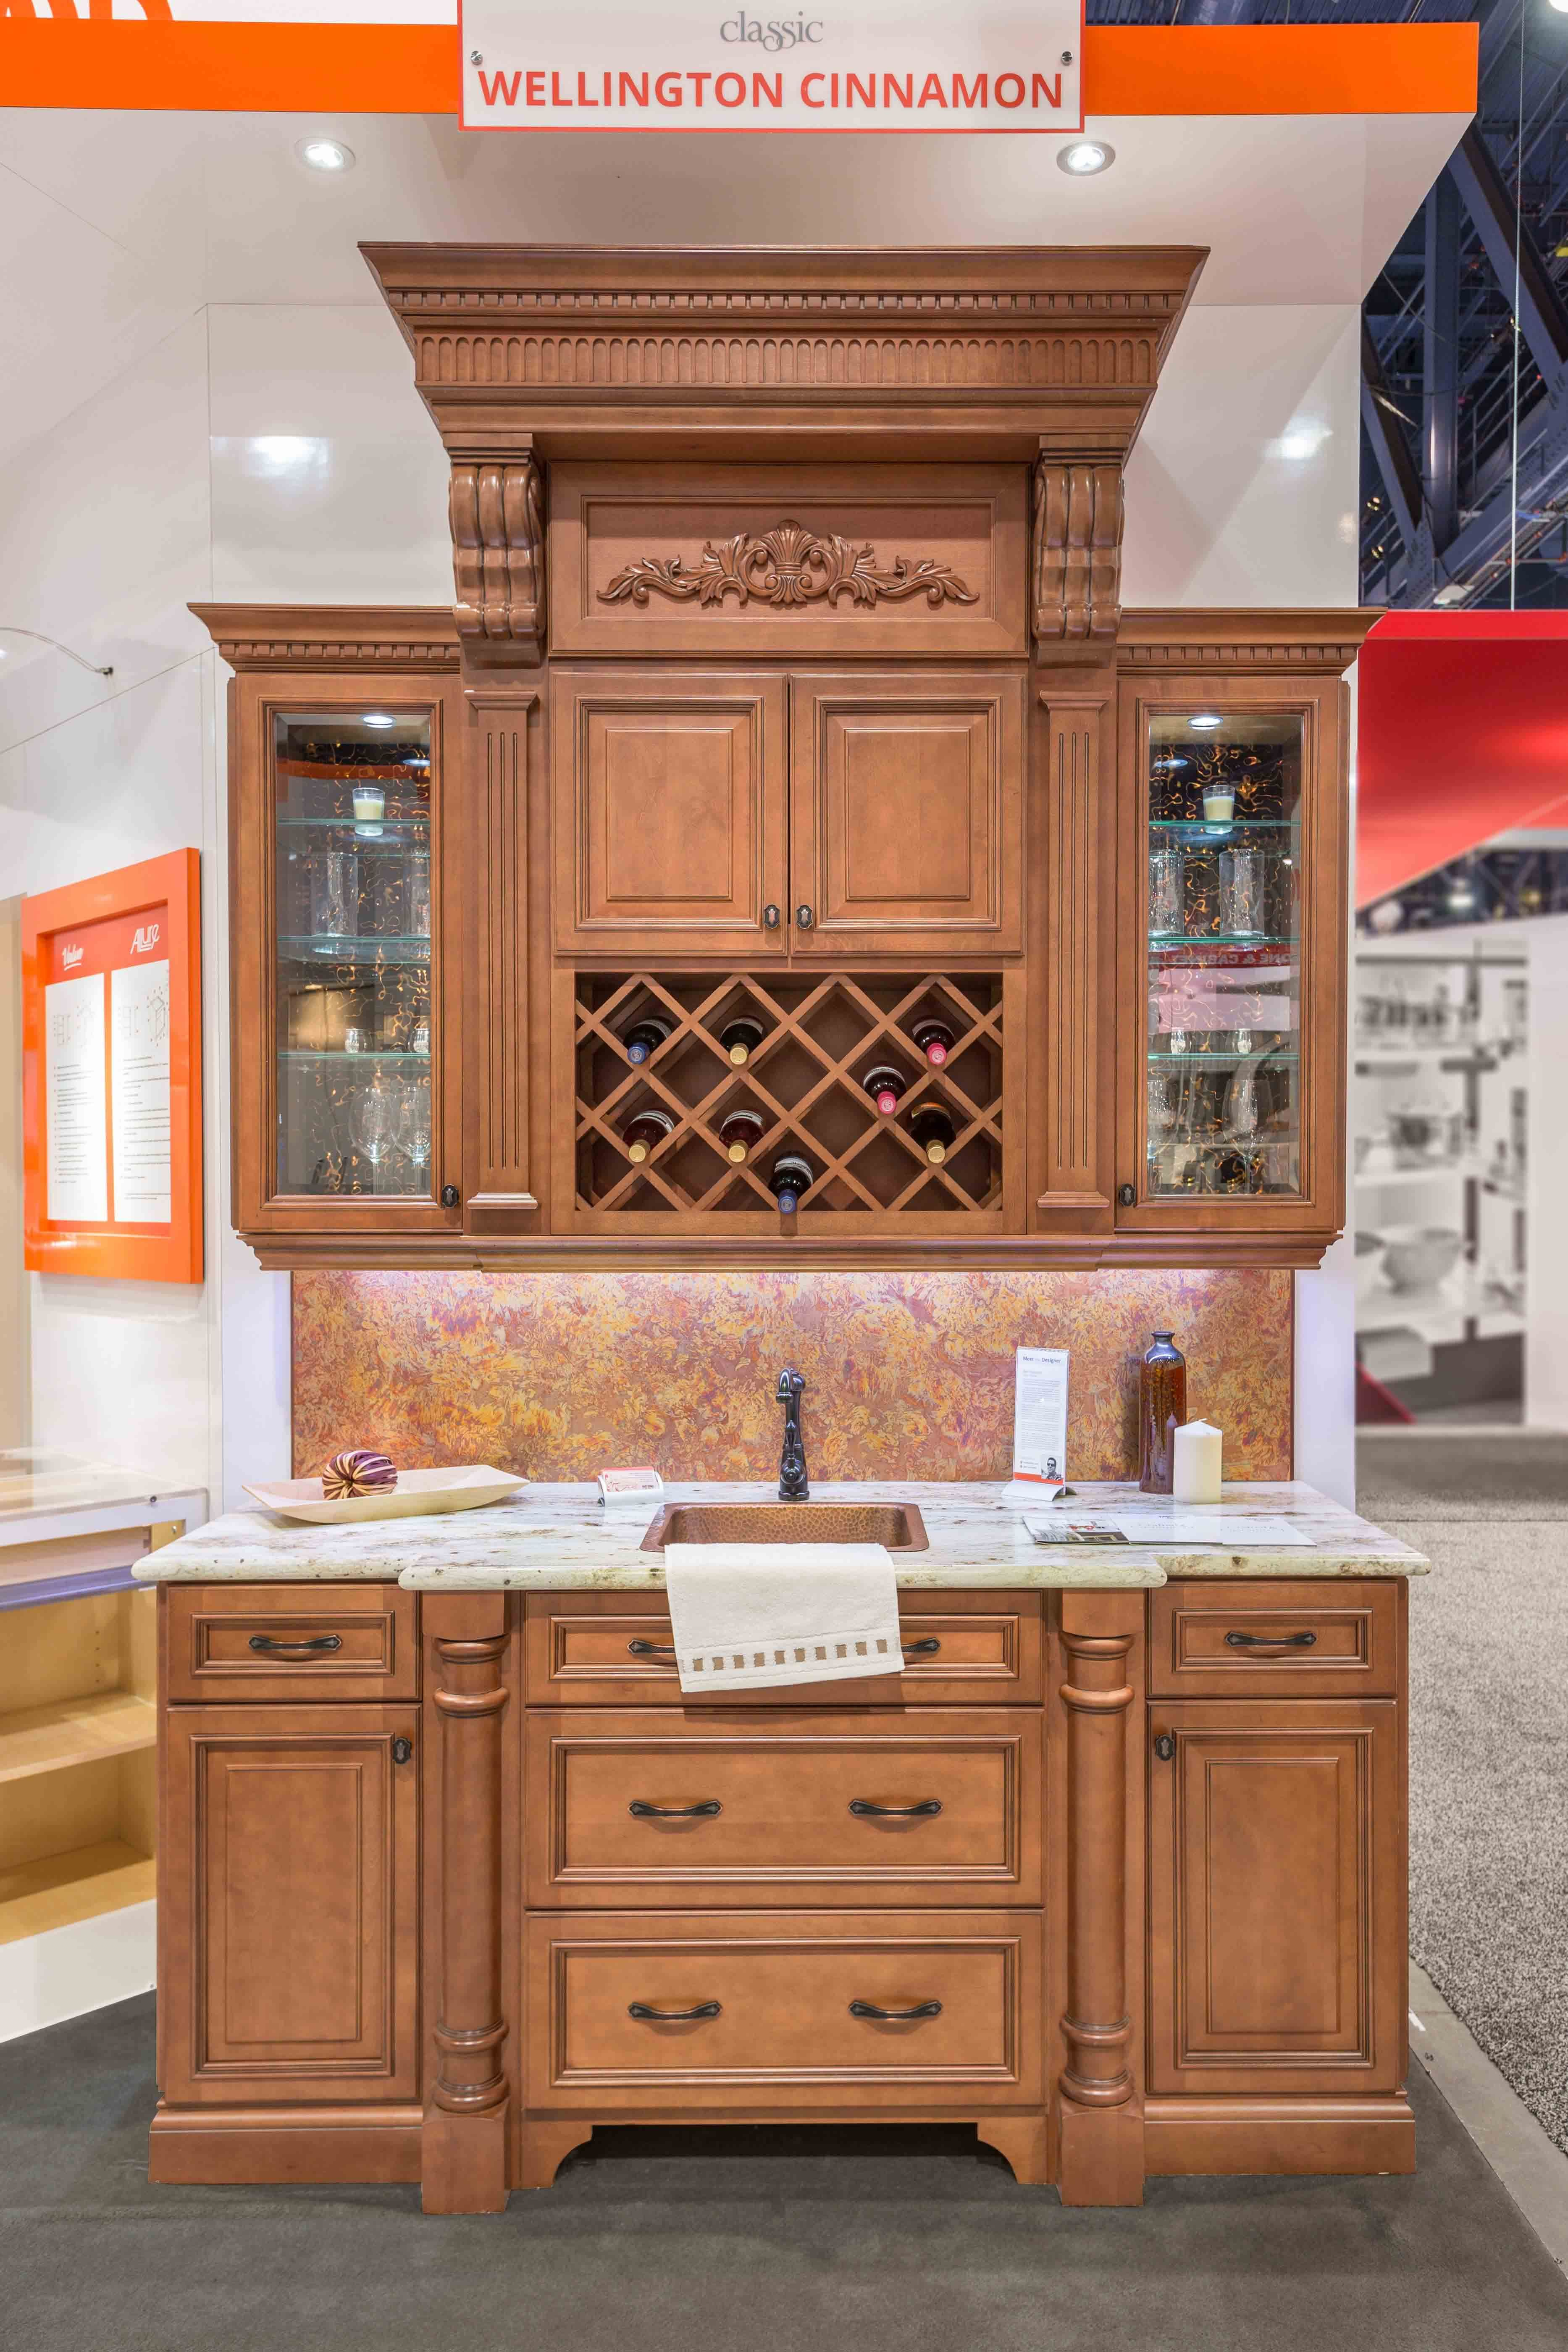 Best Fabuwood Cabinetry Kbis 2016 Booth Featuring Formica 640 x 480